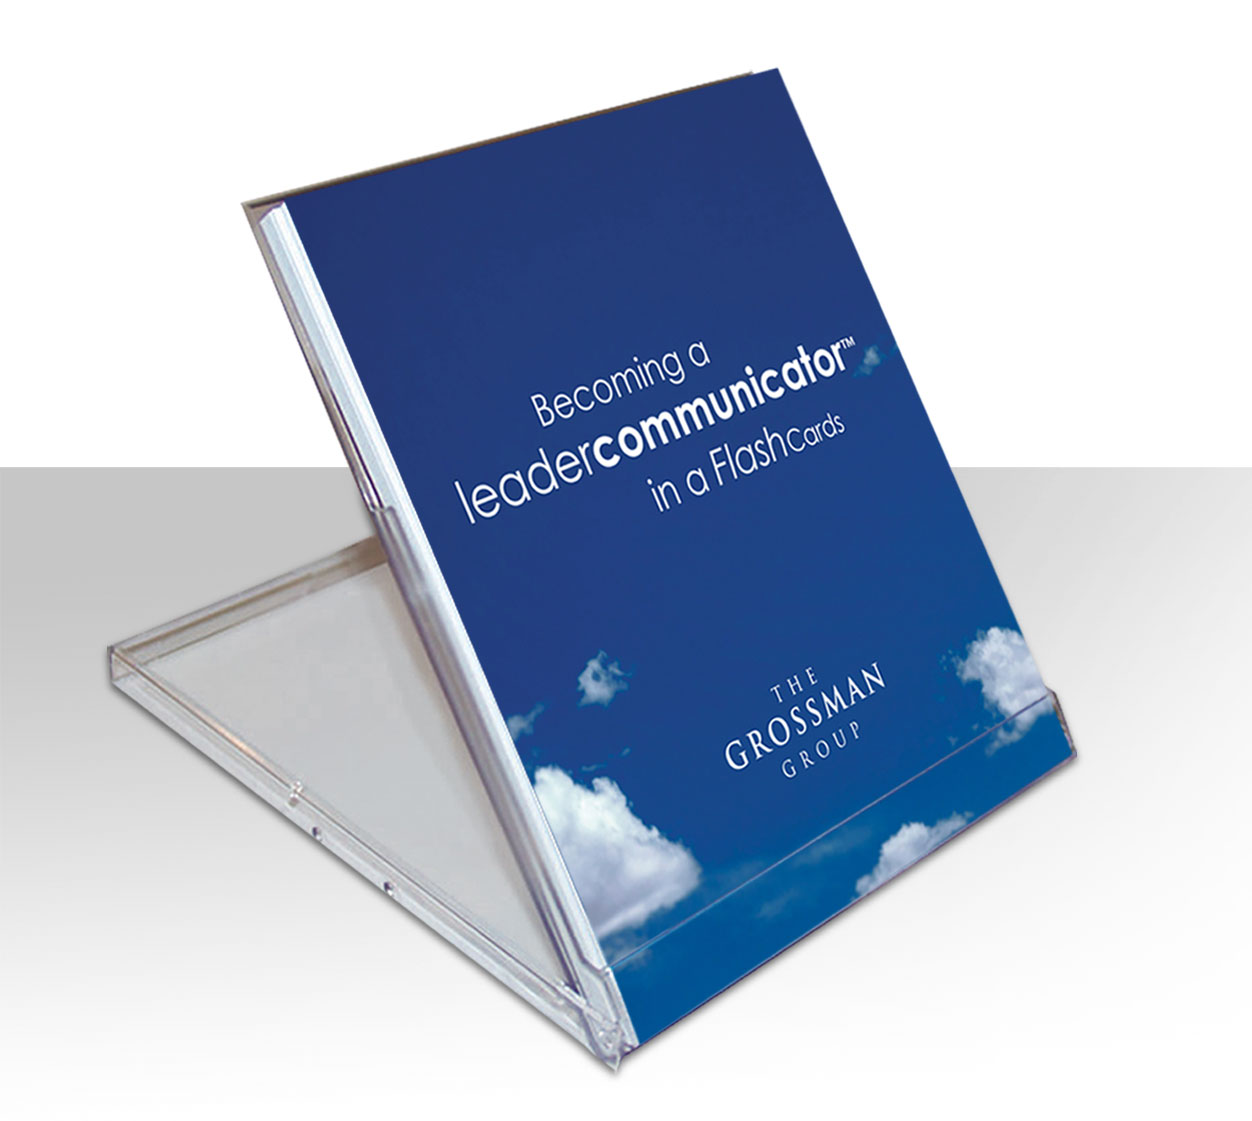 leadership communication tips, corporate gift idea, business gifts, gifts for CEO, CEO gifts, presents for leaders, leadership gifts, leader communicator flashcards, communication flashcards, flashcards for leaders, david grossman, the grossman group